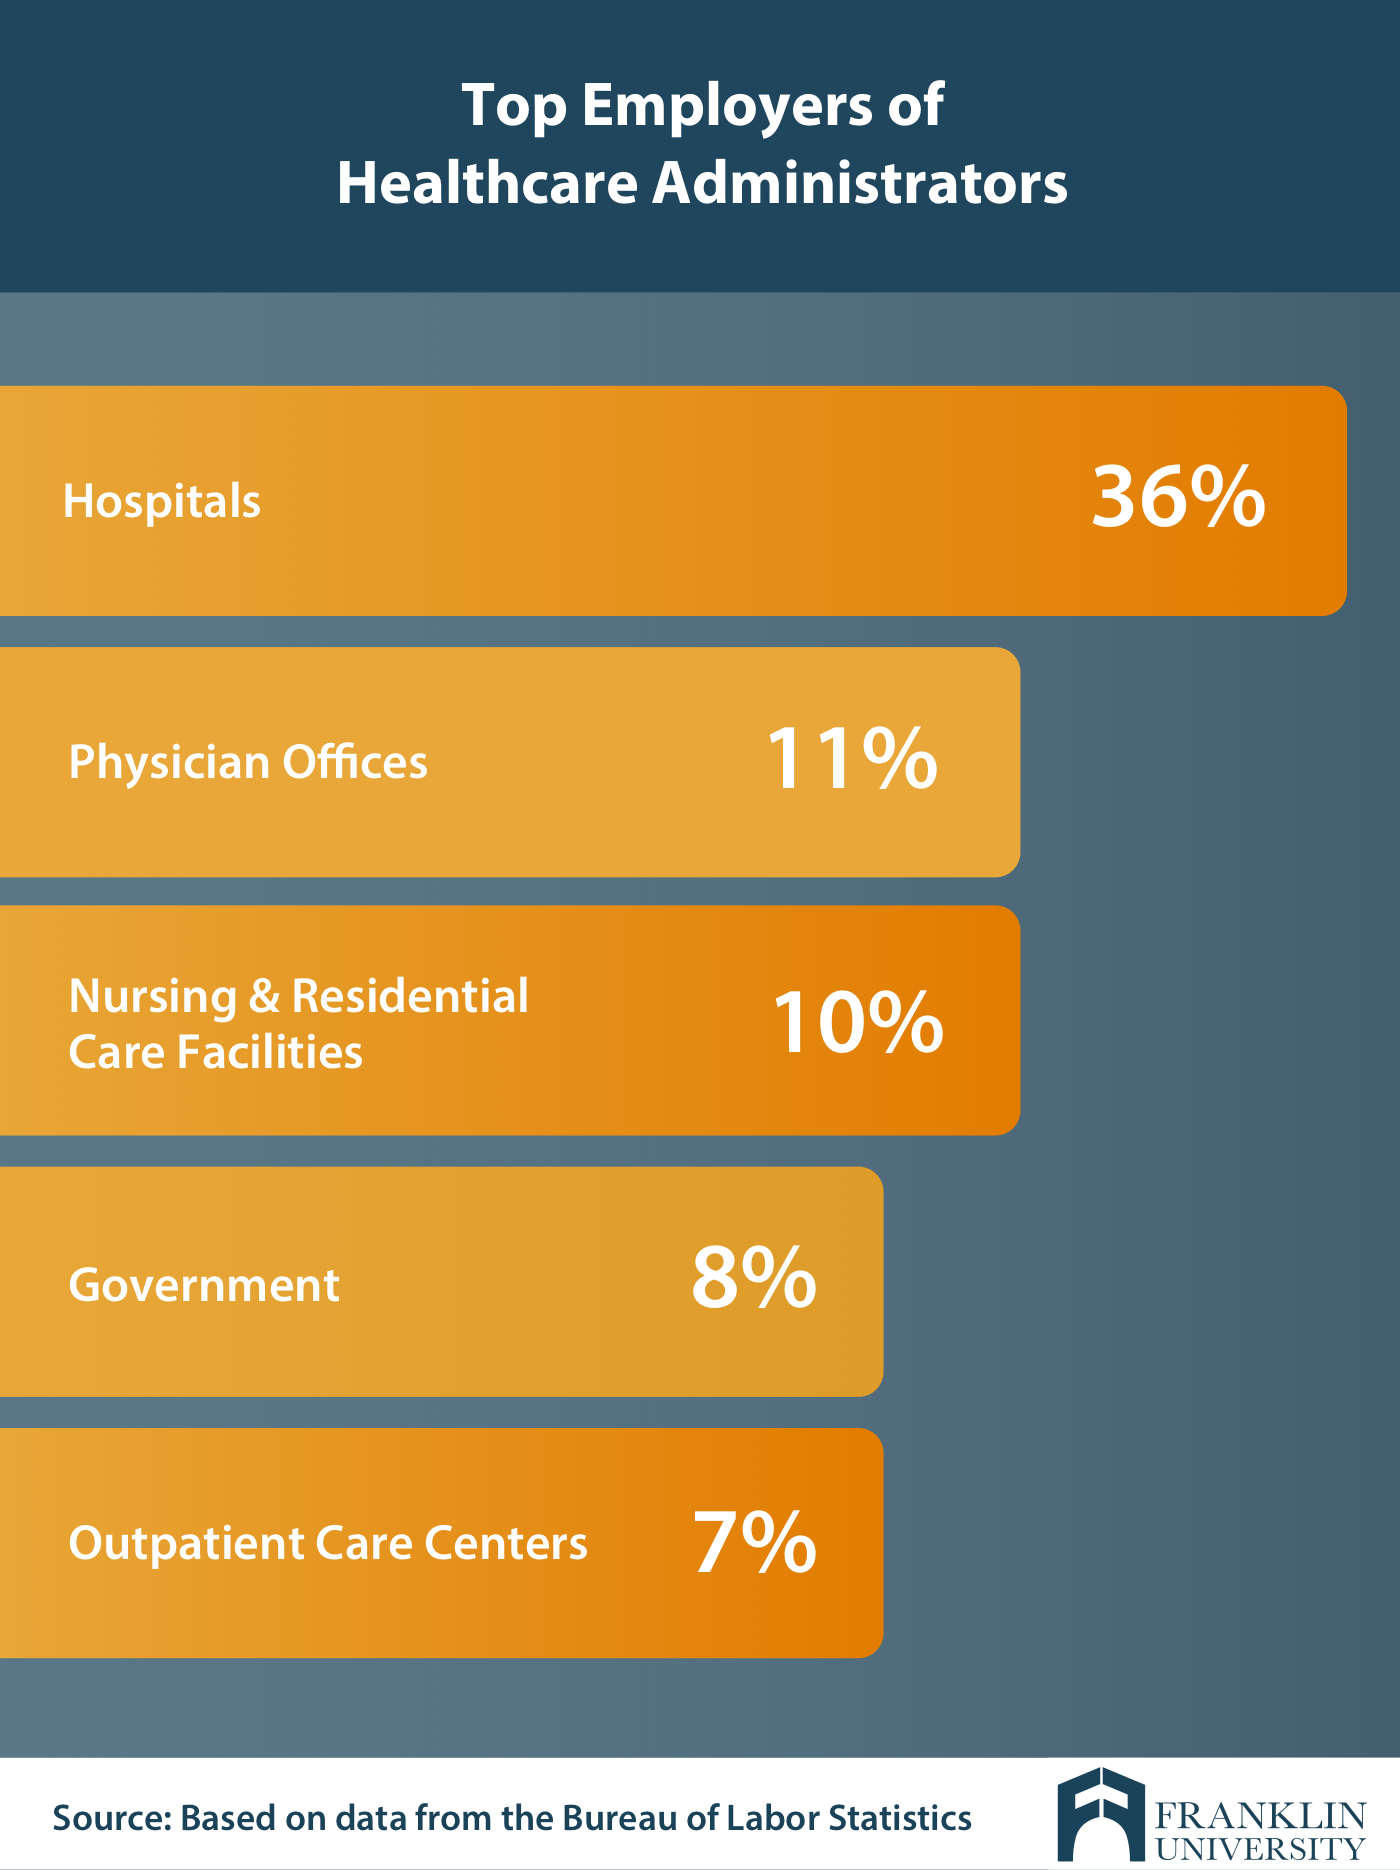 graphic describing the top employers of healthcare administrators